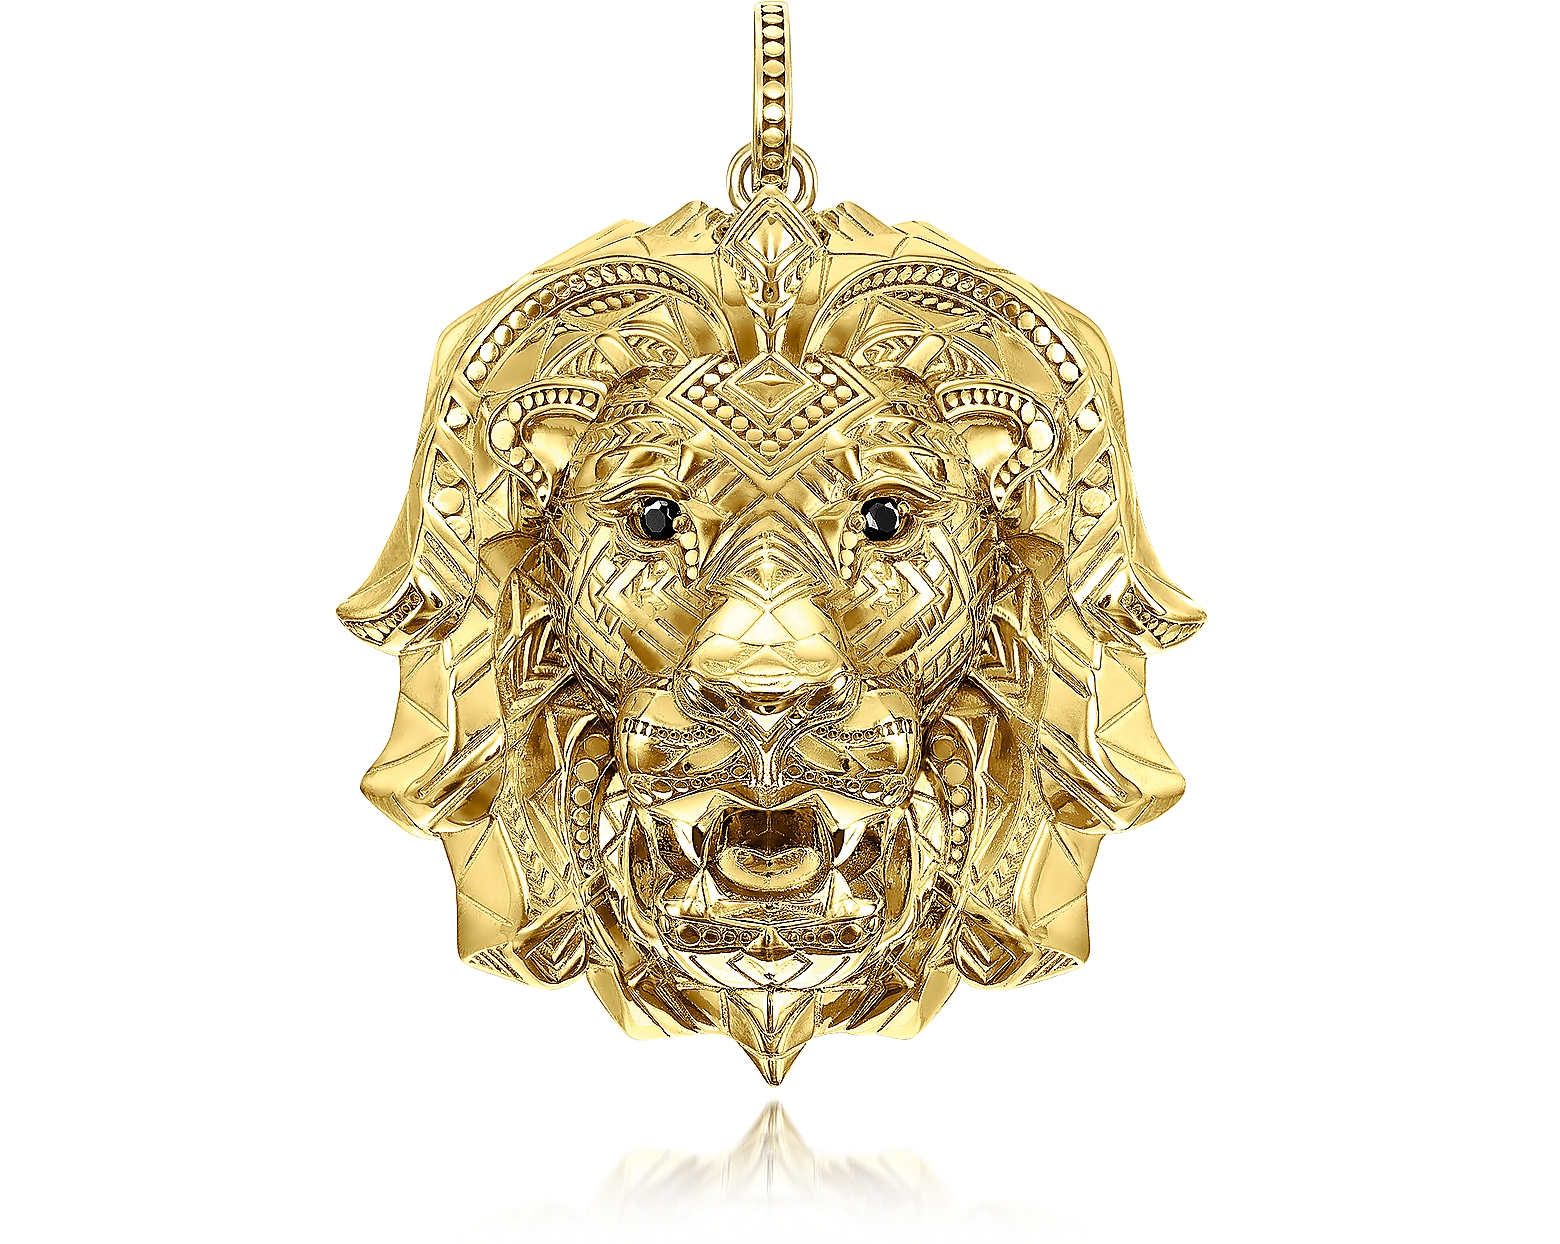 925 Sterling Silver & 18k Yellow Gold Lion Pendant w/Black Zirconia